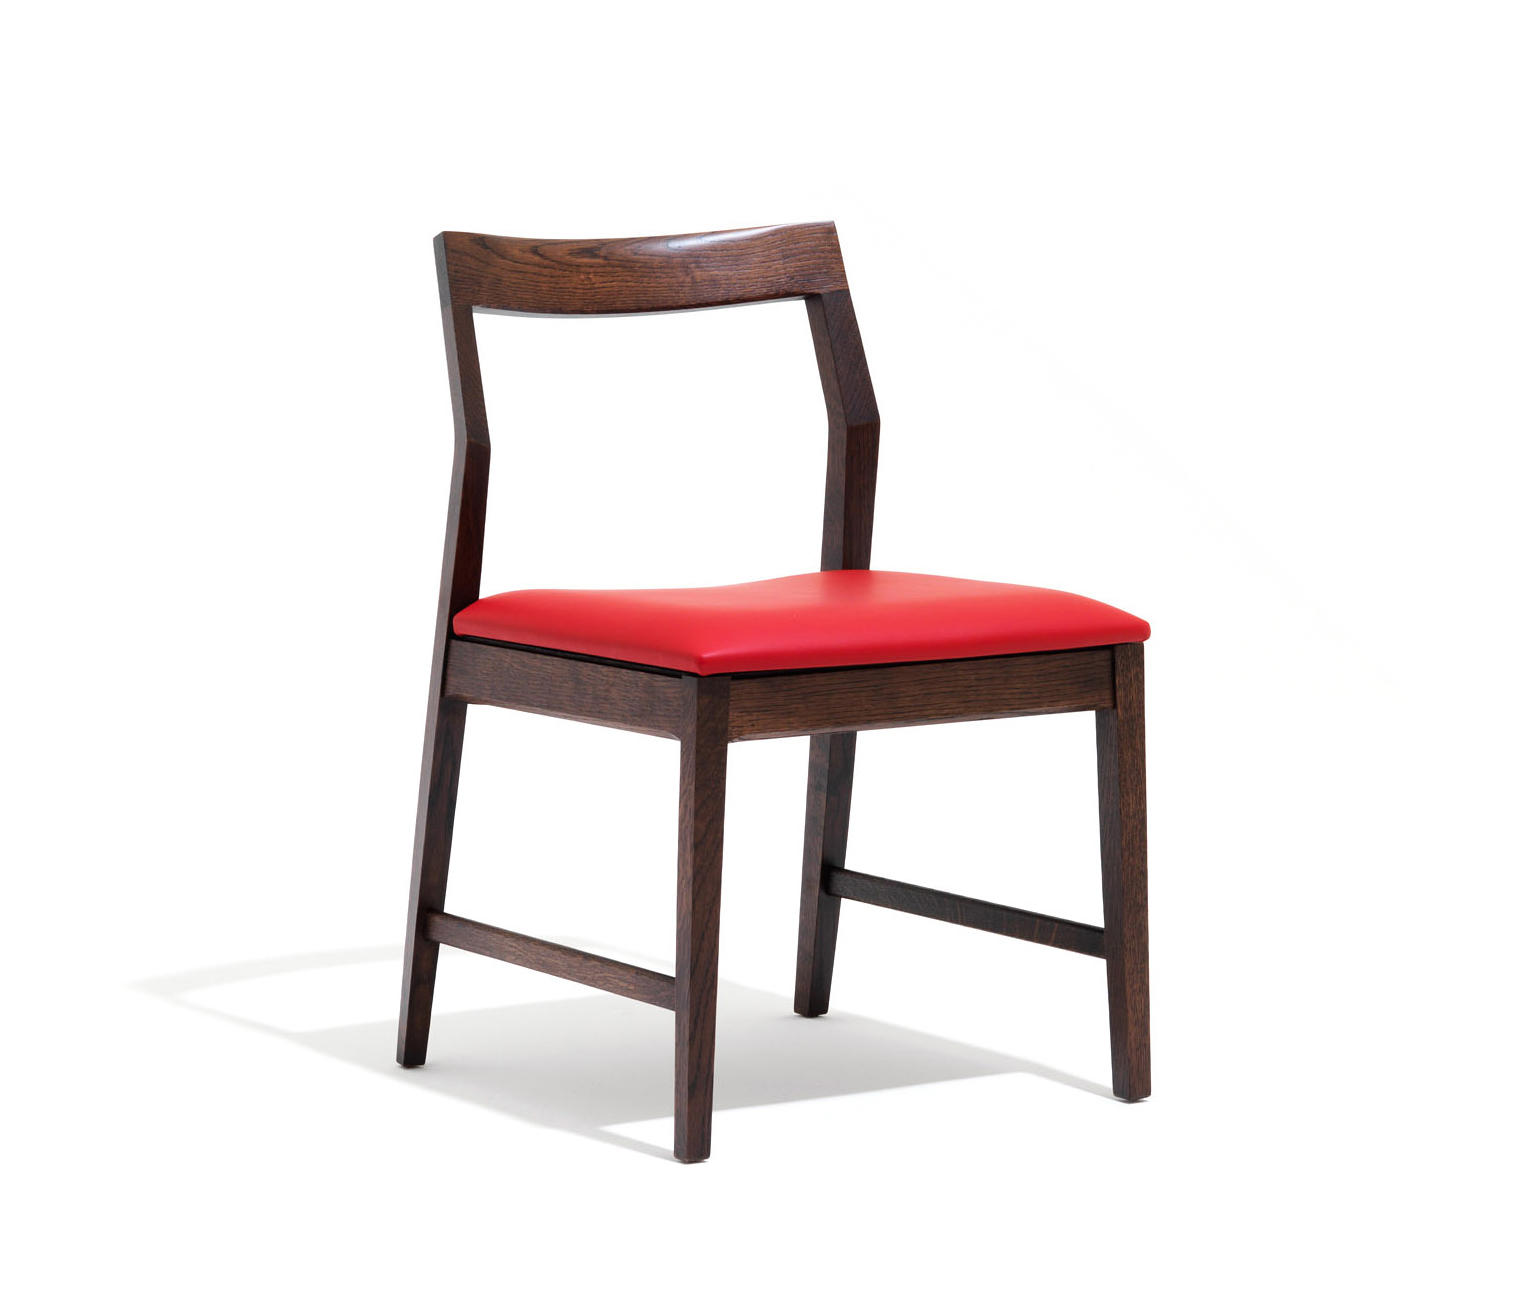 Krusin Side Chair By Knoll International | Chairs ...